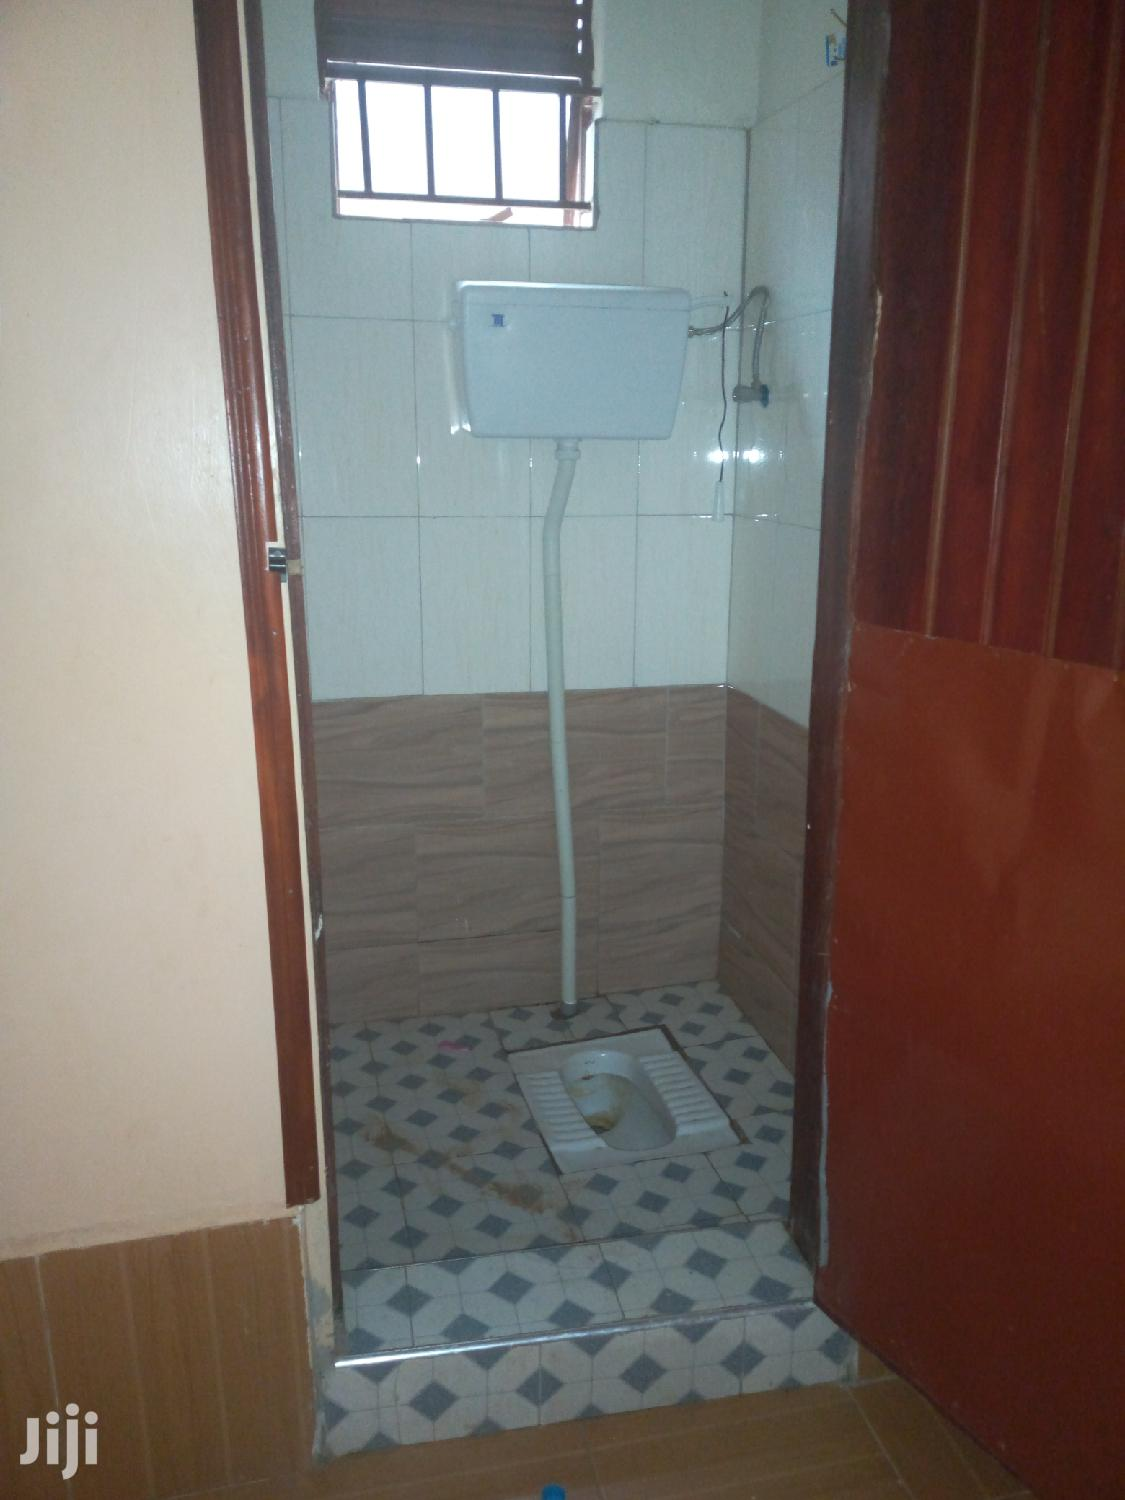 Single Room For Rent For In Kitintale Mutungo Road